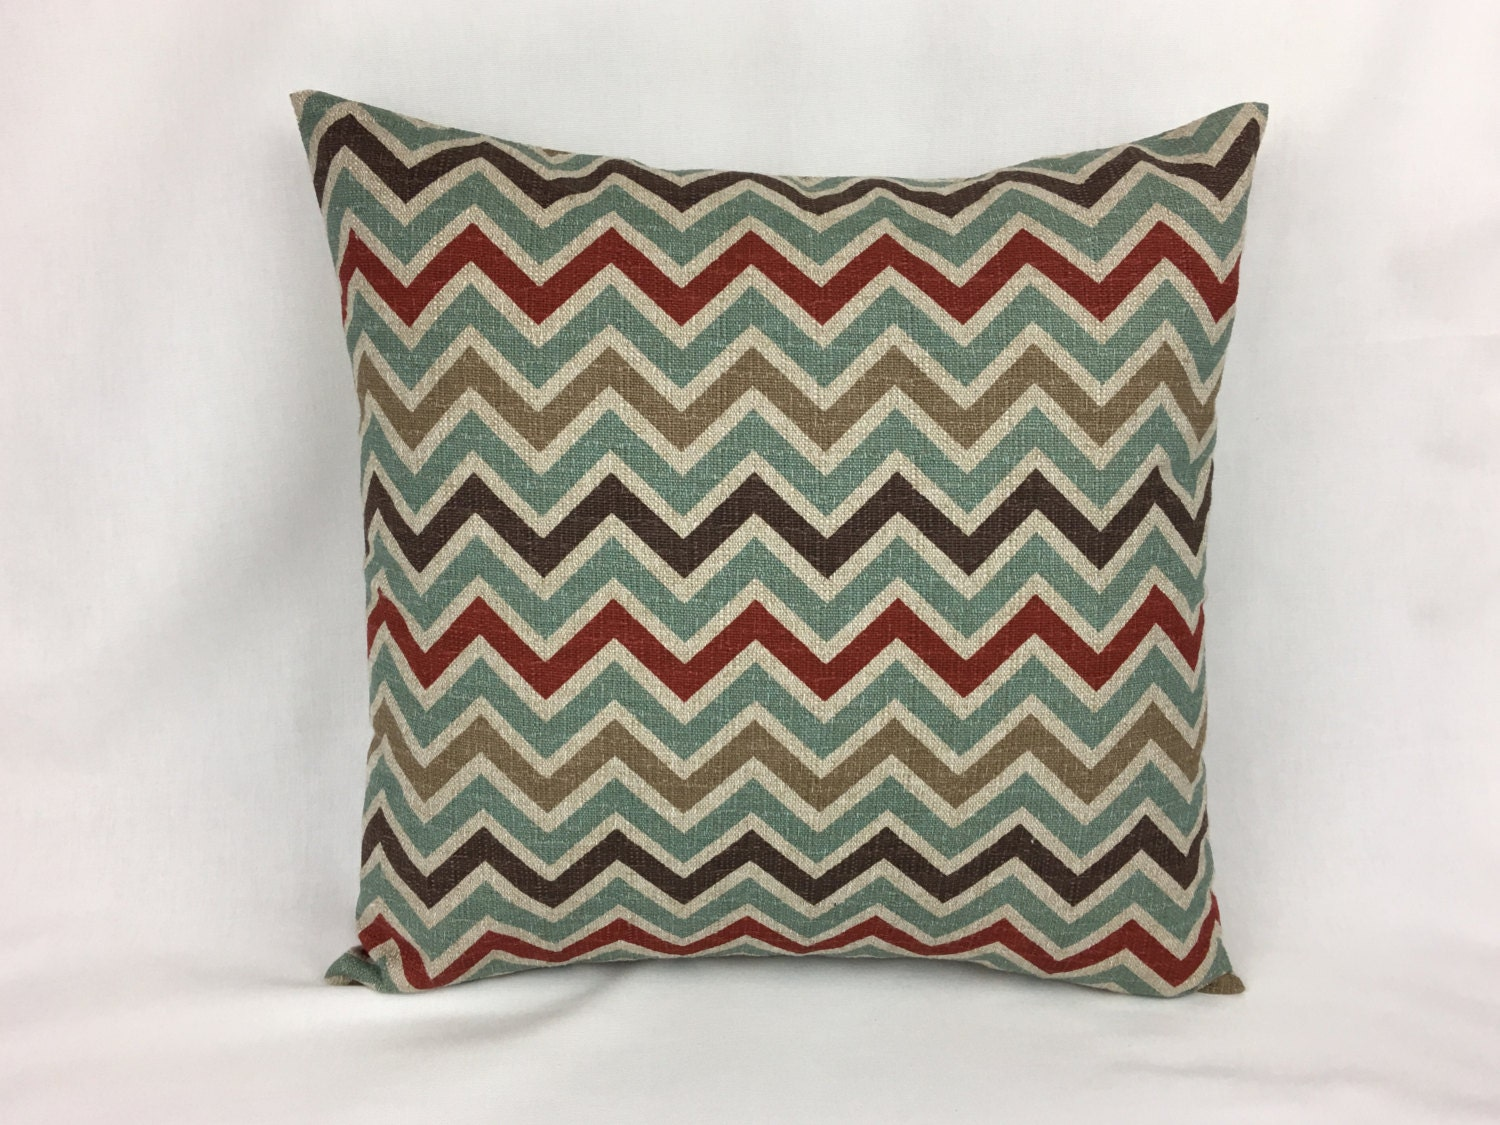 IKEA Cushion Cover Pillow Cover 26 x 26